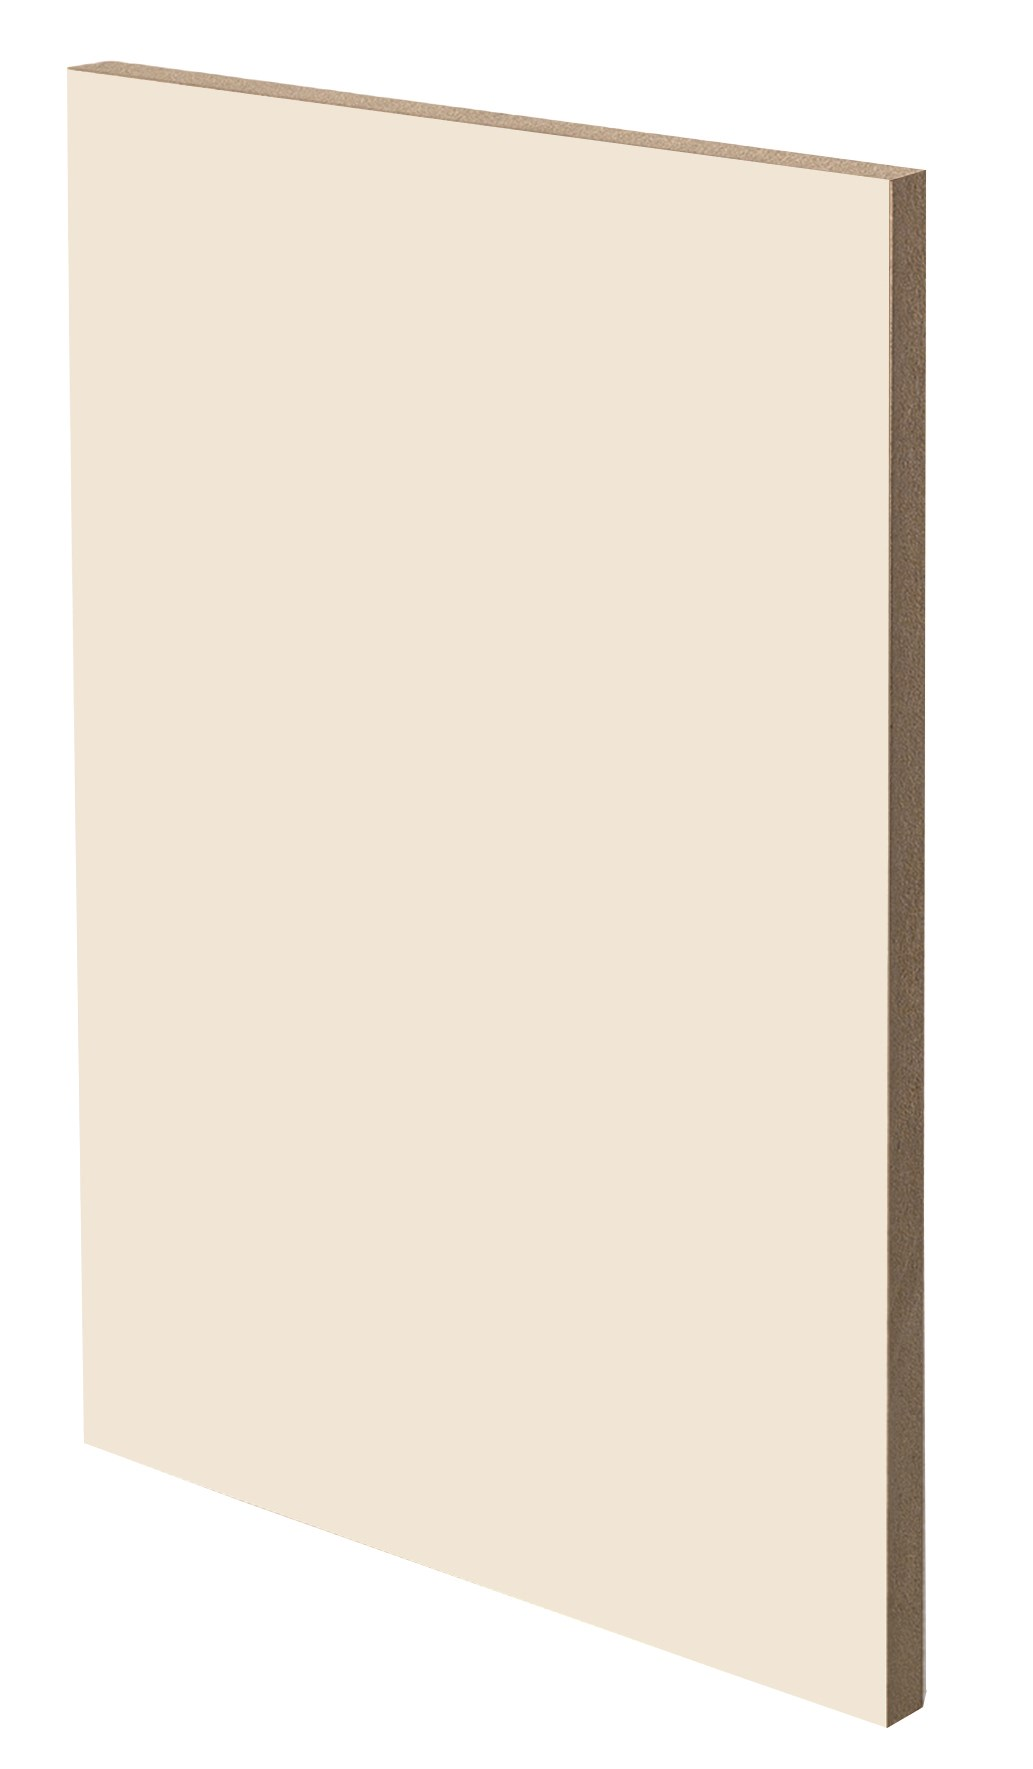 Finsa Superpan Décor Melamine Faced Chipboard Sheet 1200 x 2440mm - Beige Matt